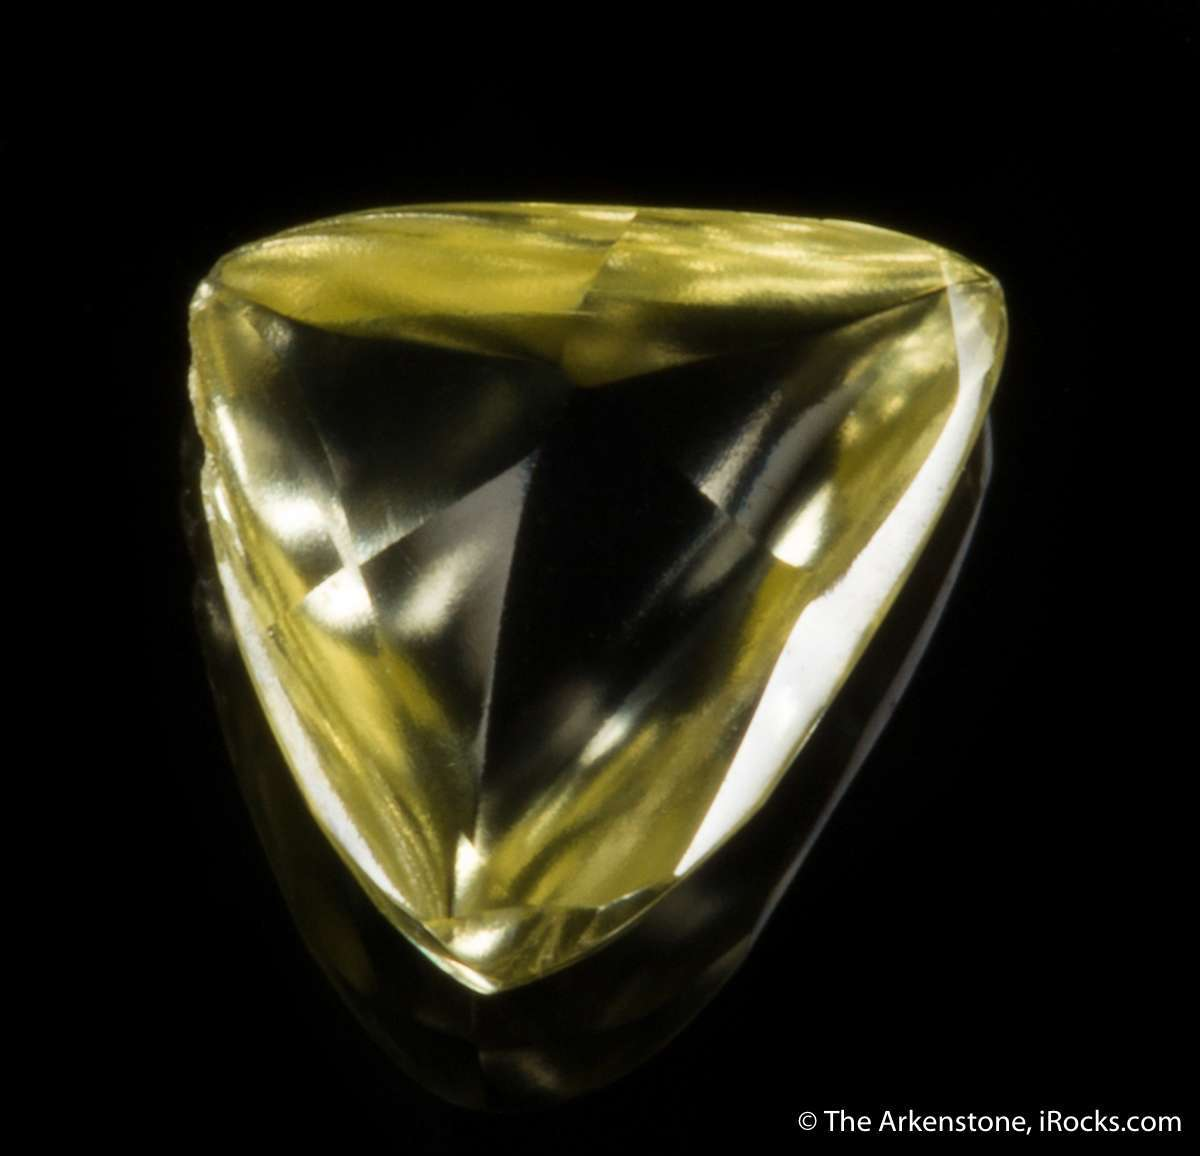 A stunning rich yellow diamond famous Argyll Mine showing natural